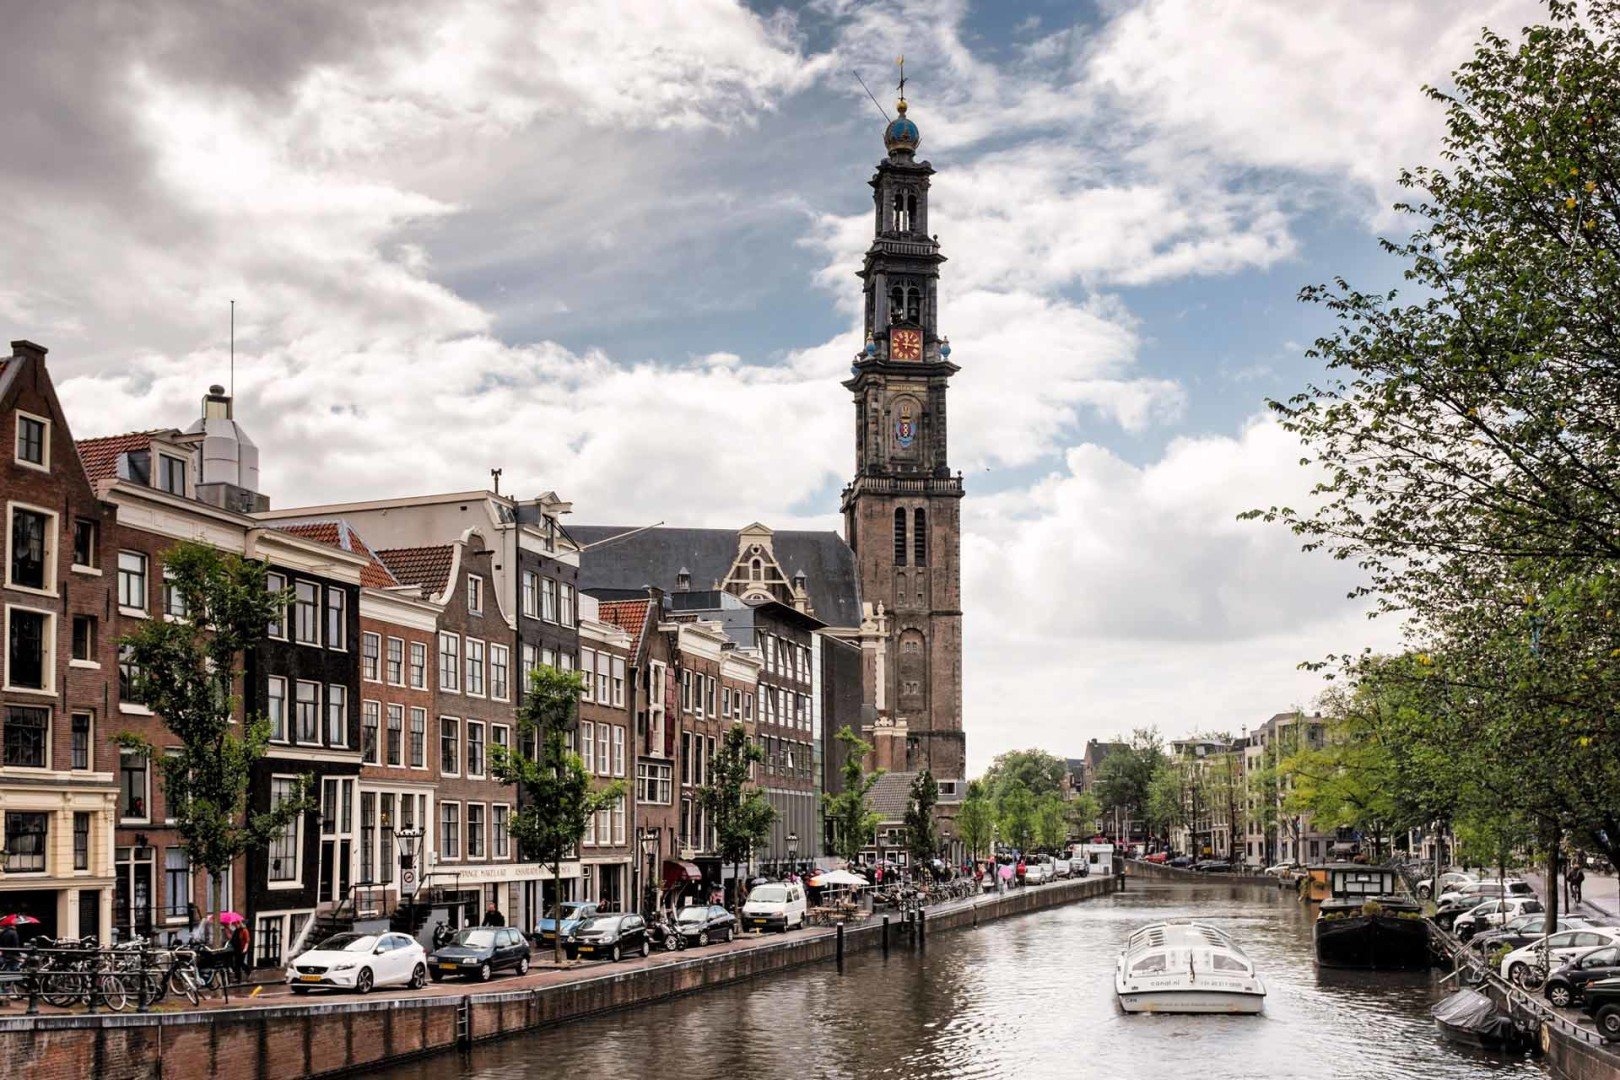 Westerkerk Church canal Amsterdam Netherlands